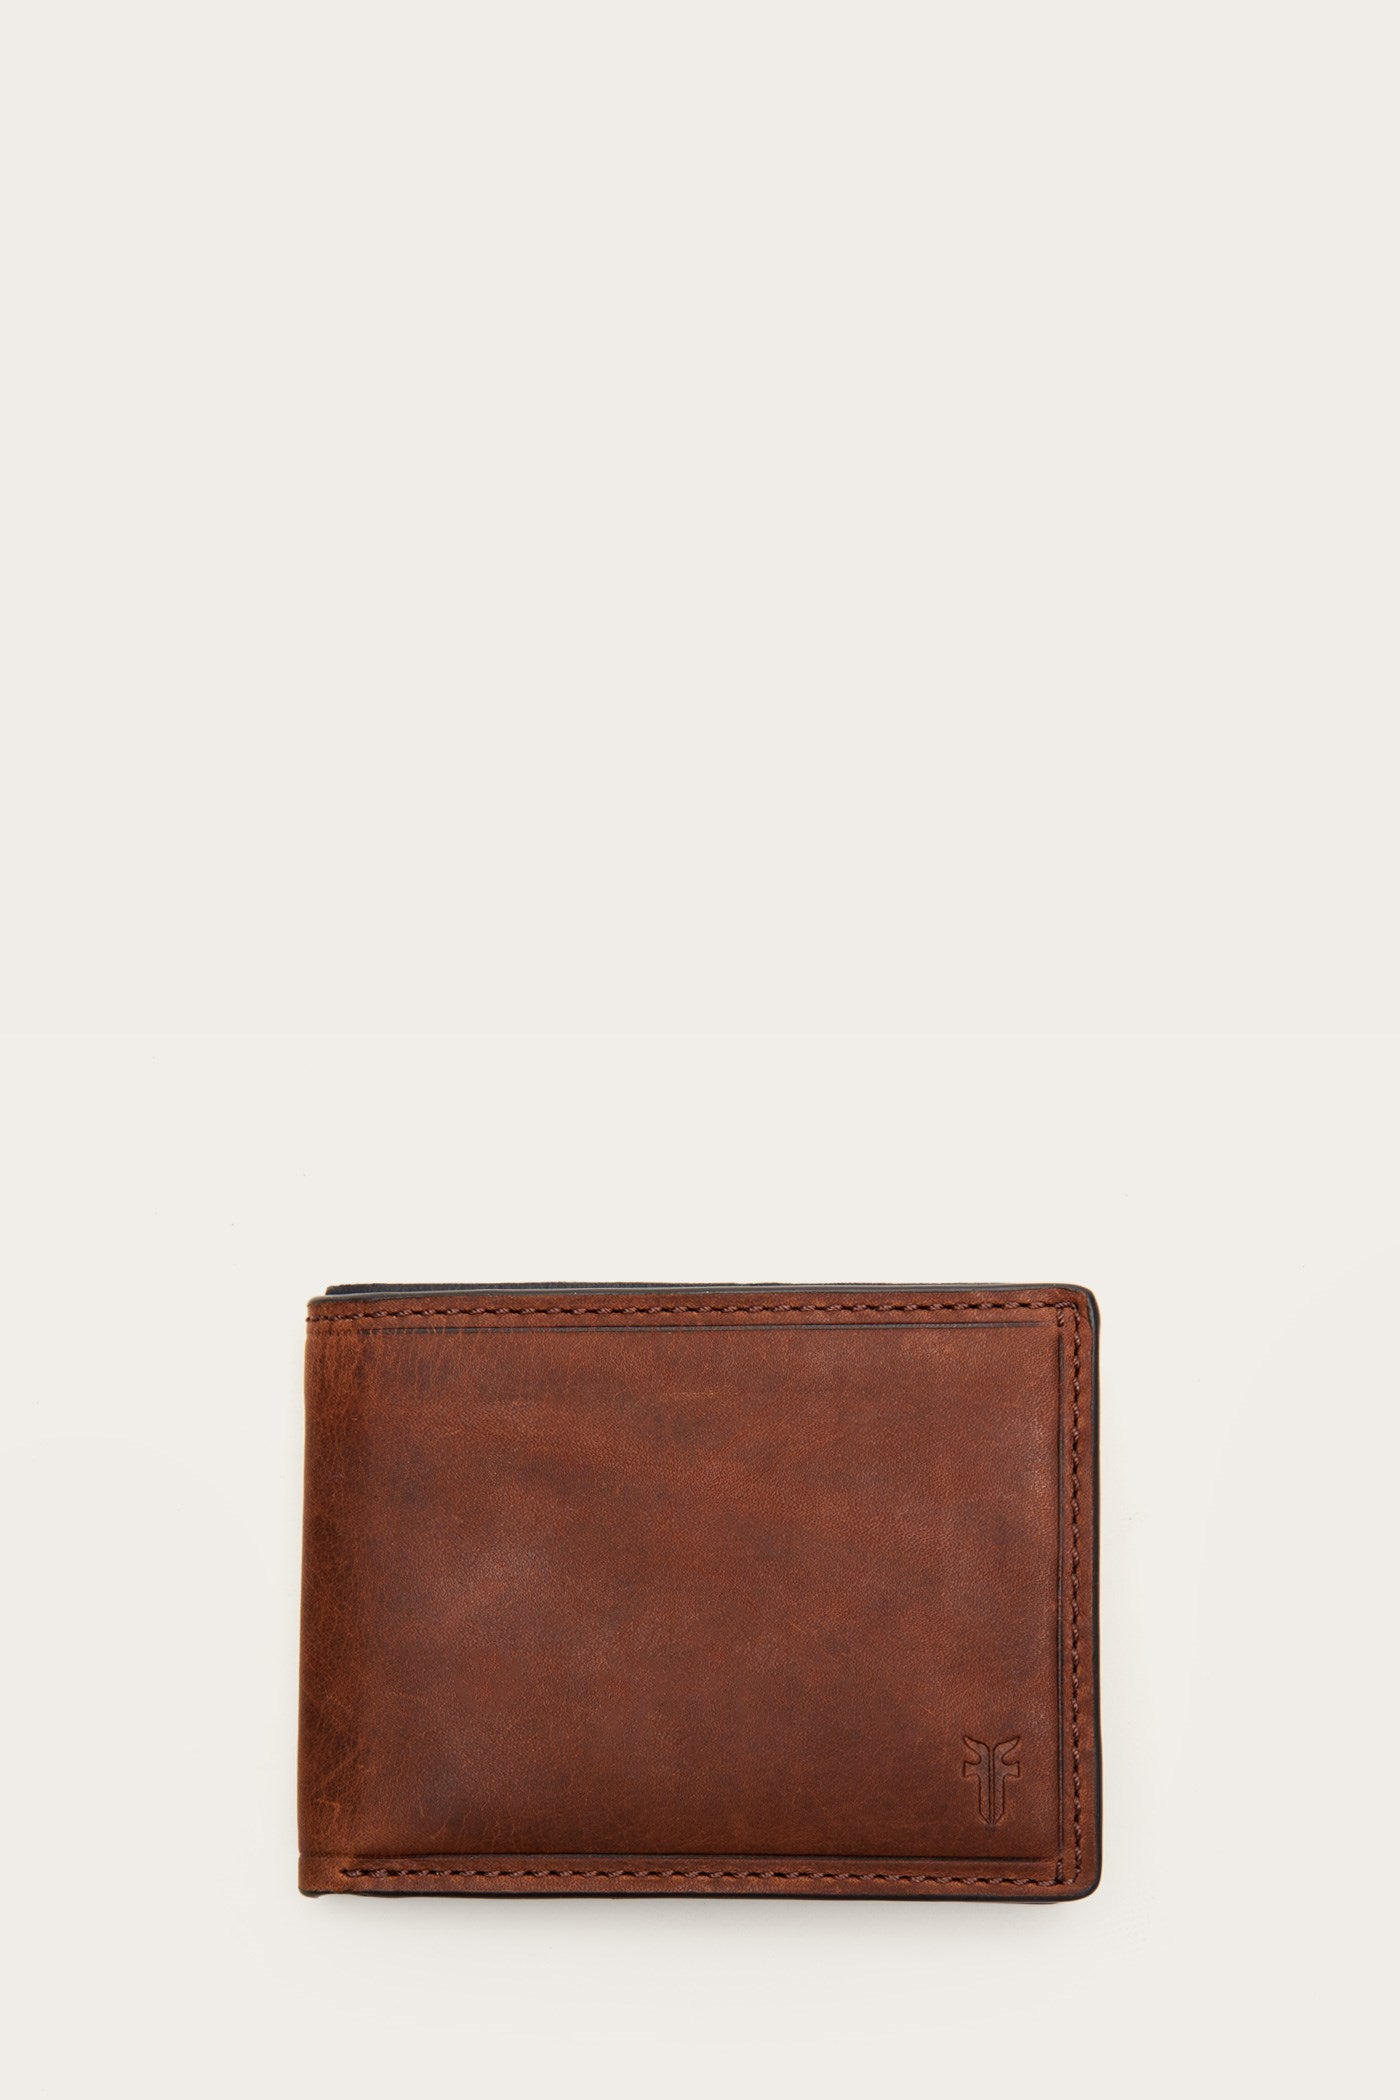 Logan Slim Id Billfold